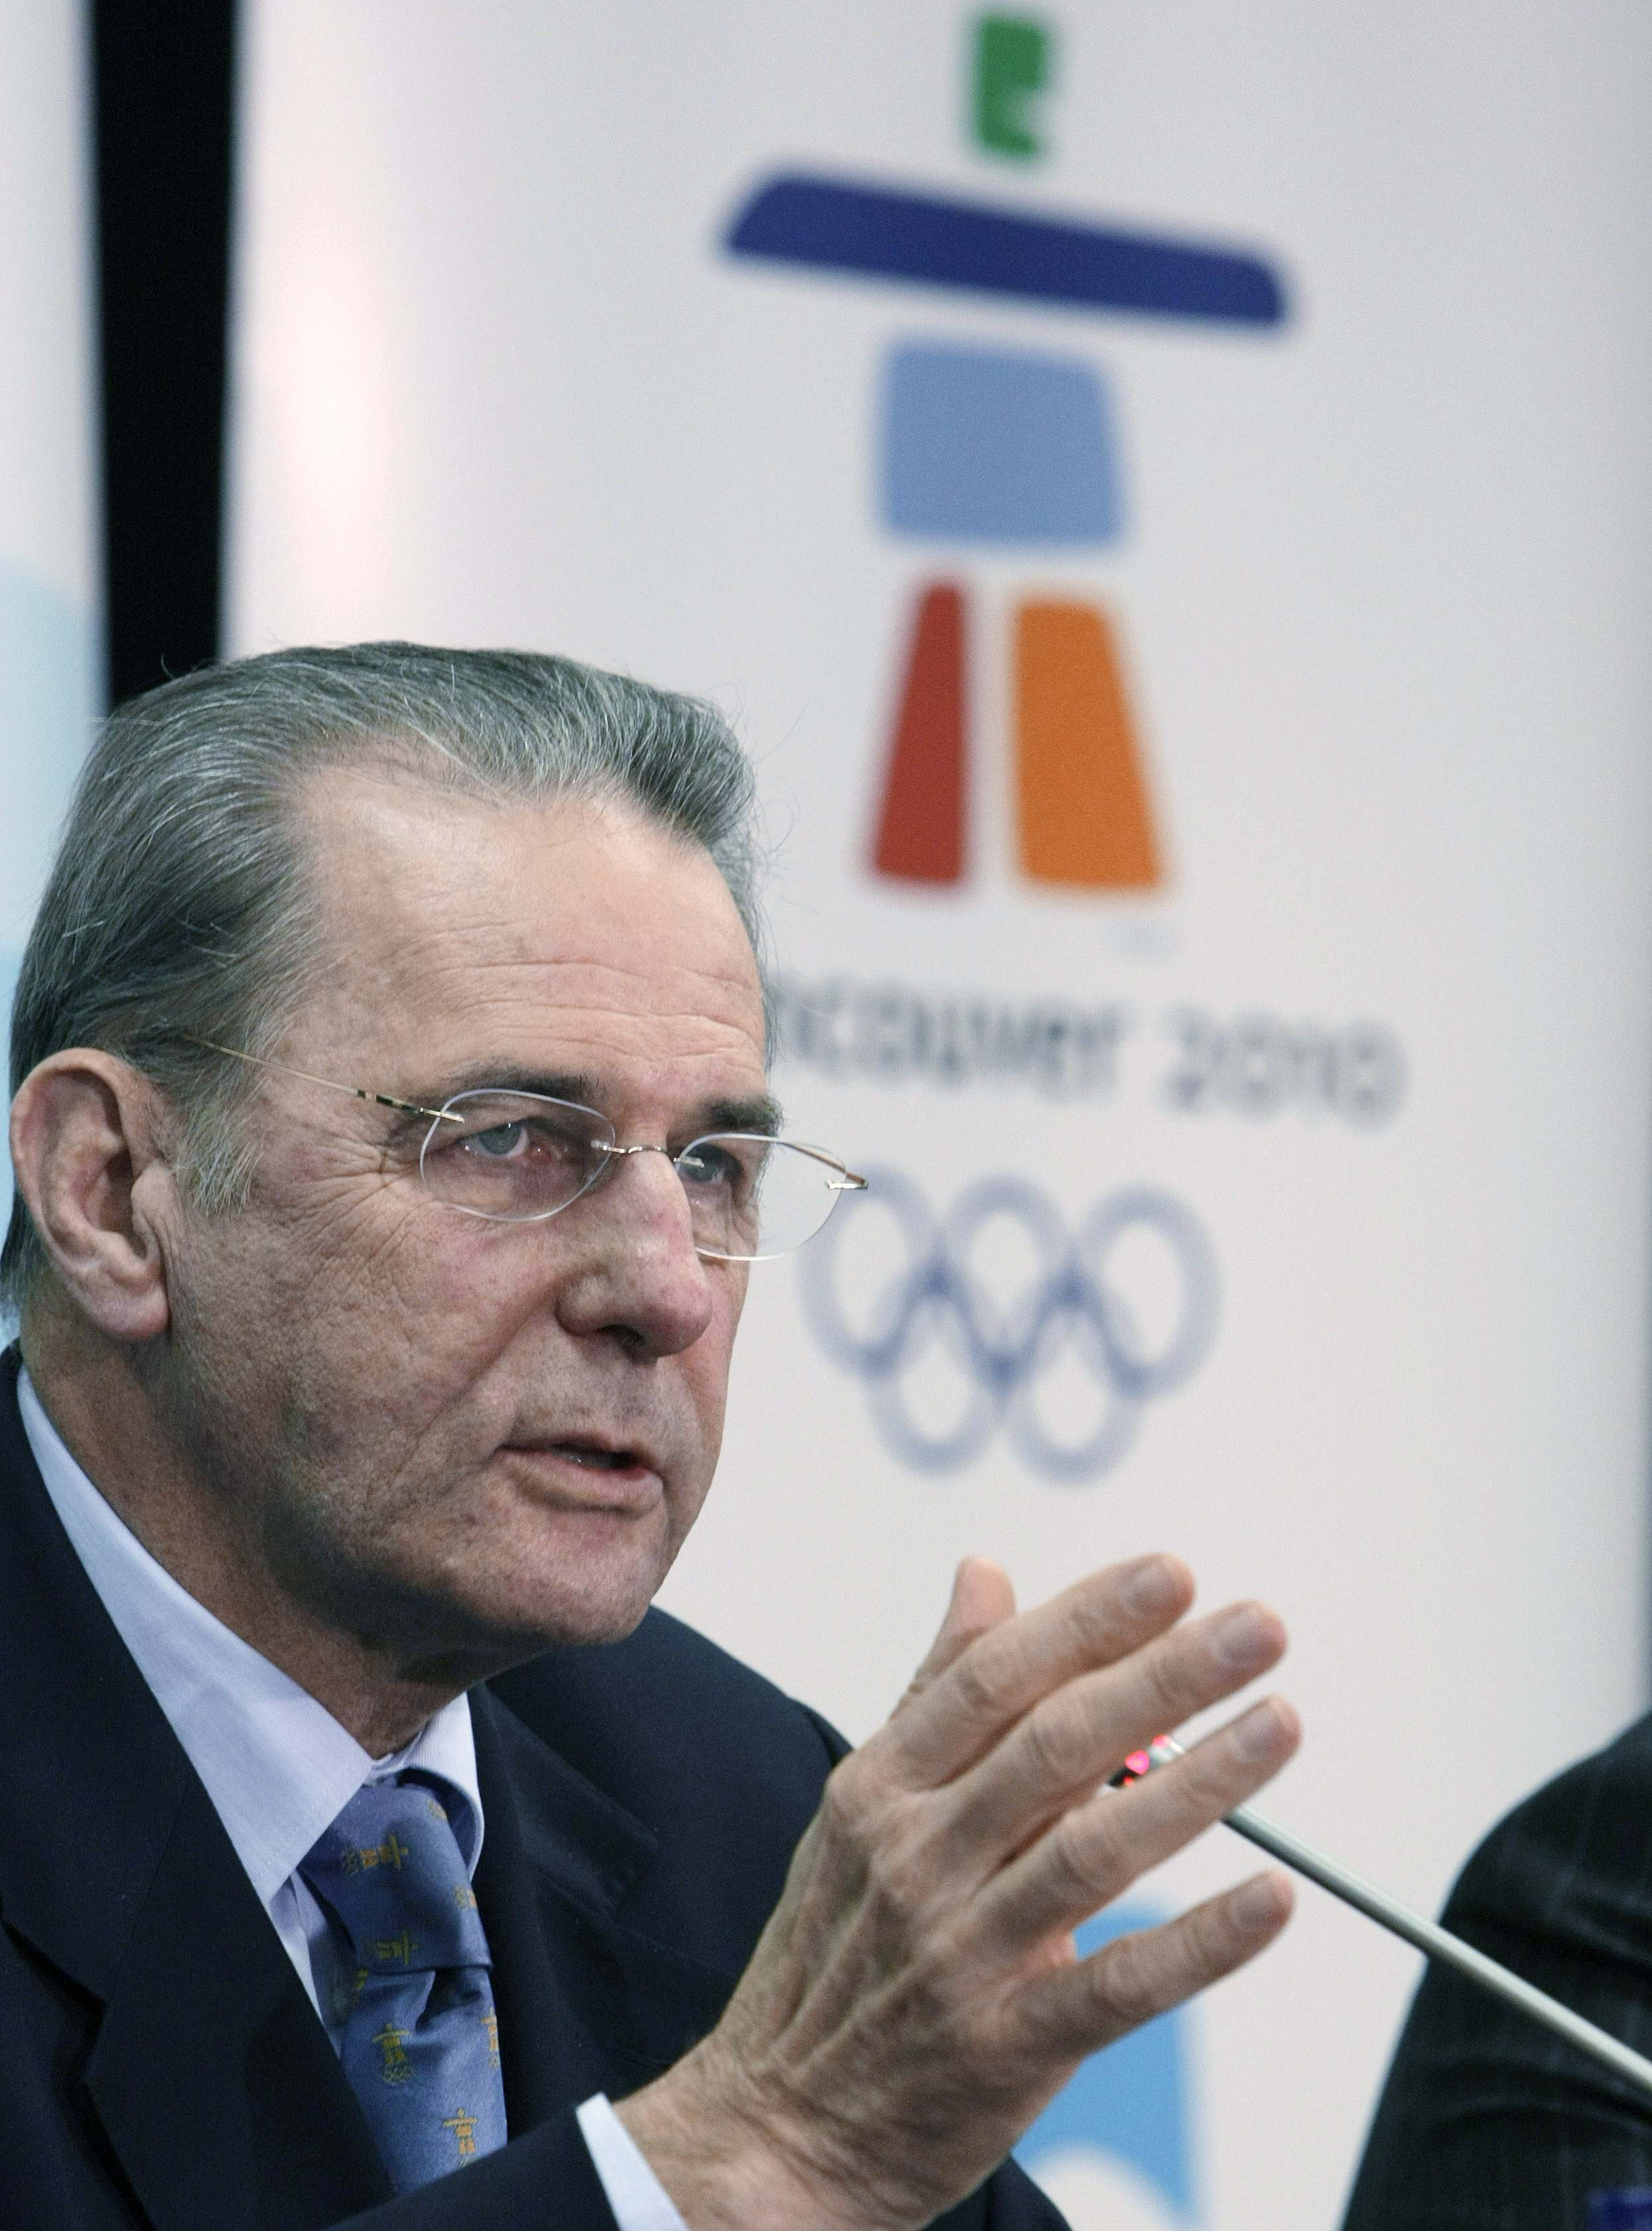 International Olympic Committee President Jacques Rogge answers questions during a news conference in Vancouver, British Columbia on Thursday.